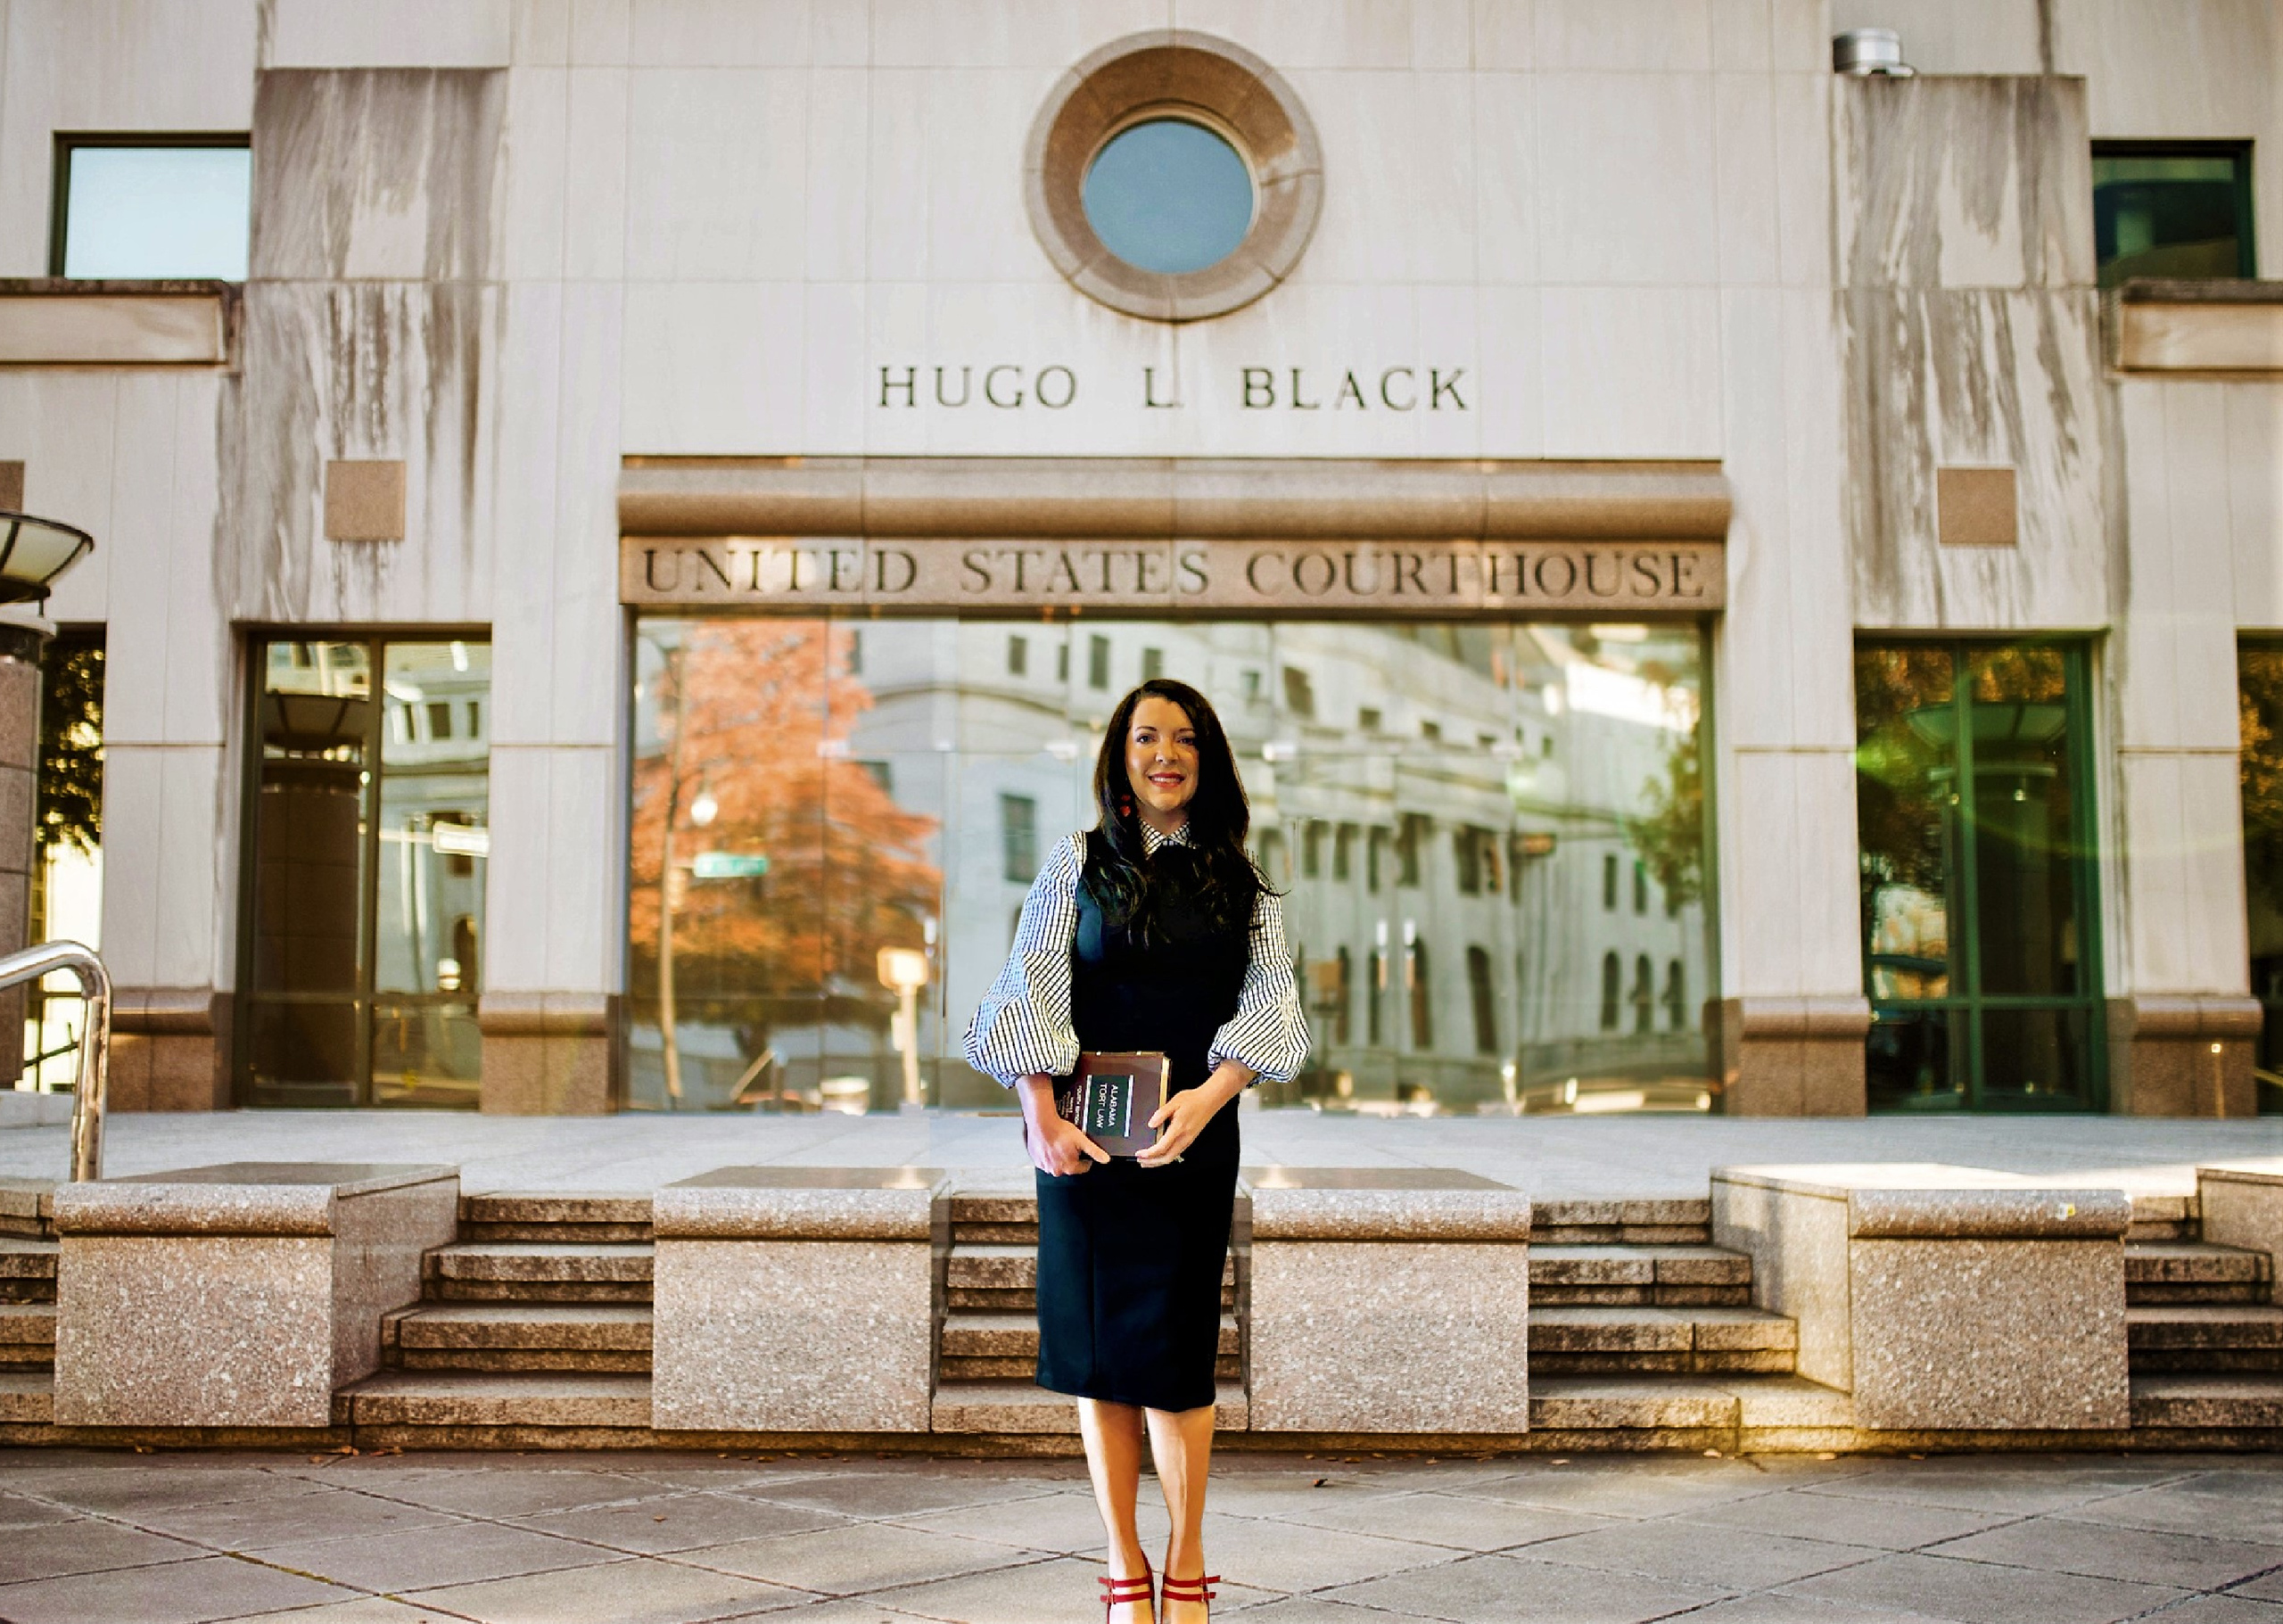 Image for Preeminence follows alumna into the courtroom